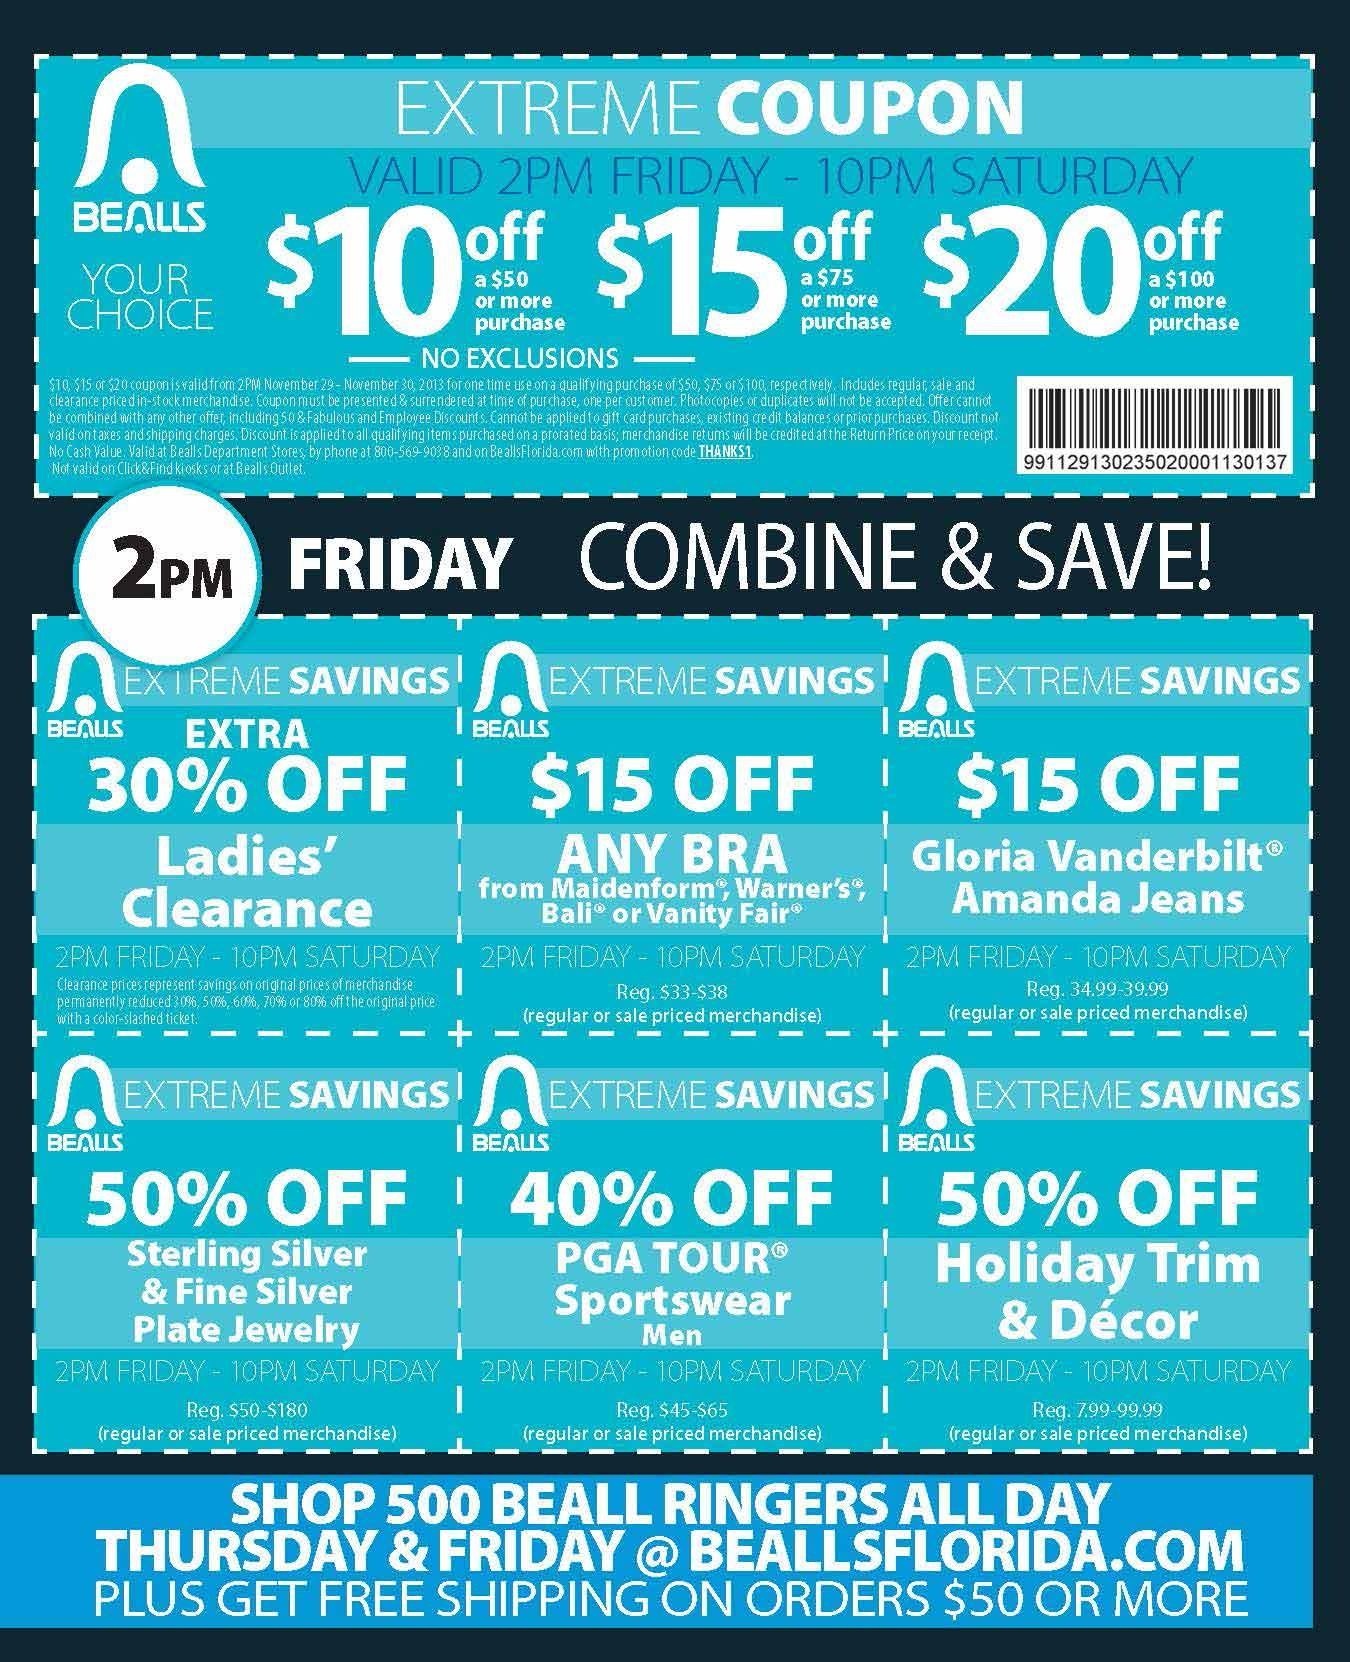 Bealls Of Florida Coupons - Online Coupons - Free Printable Bealls Florida Coupon